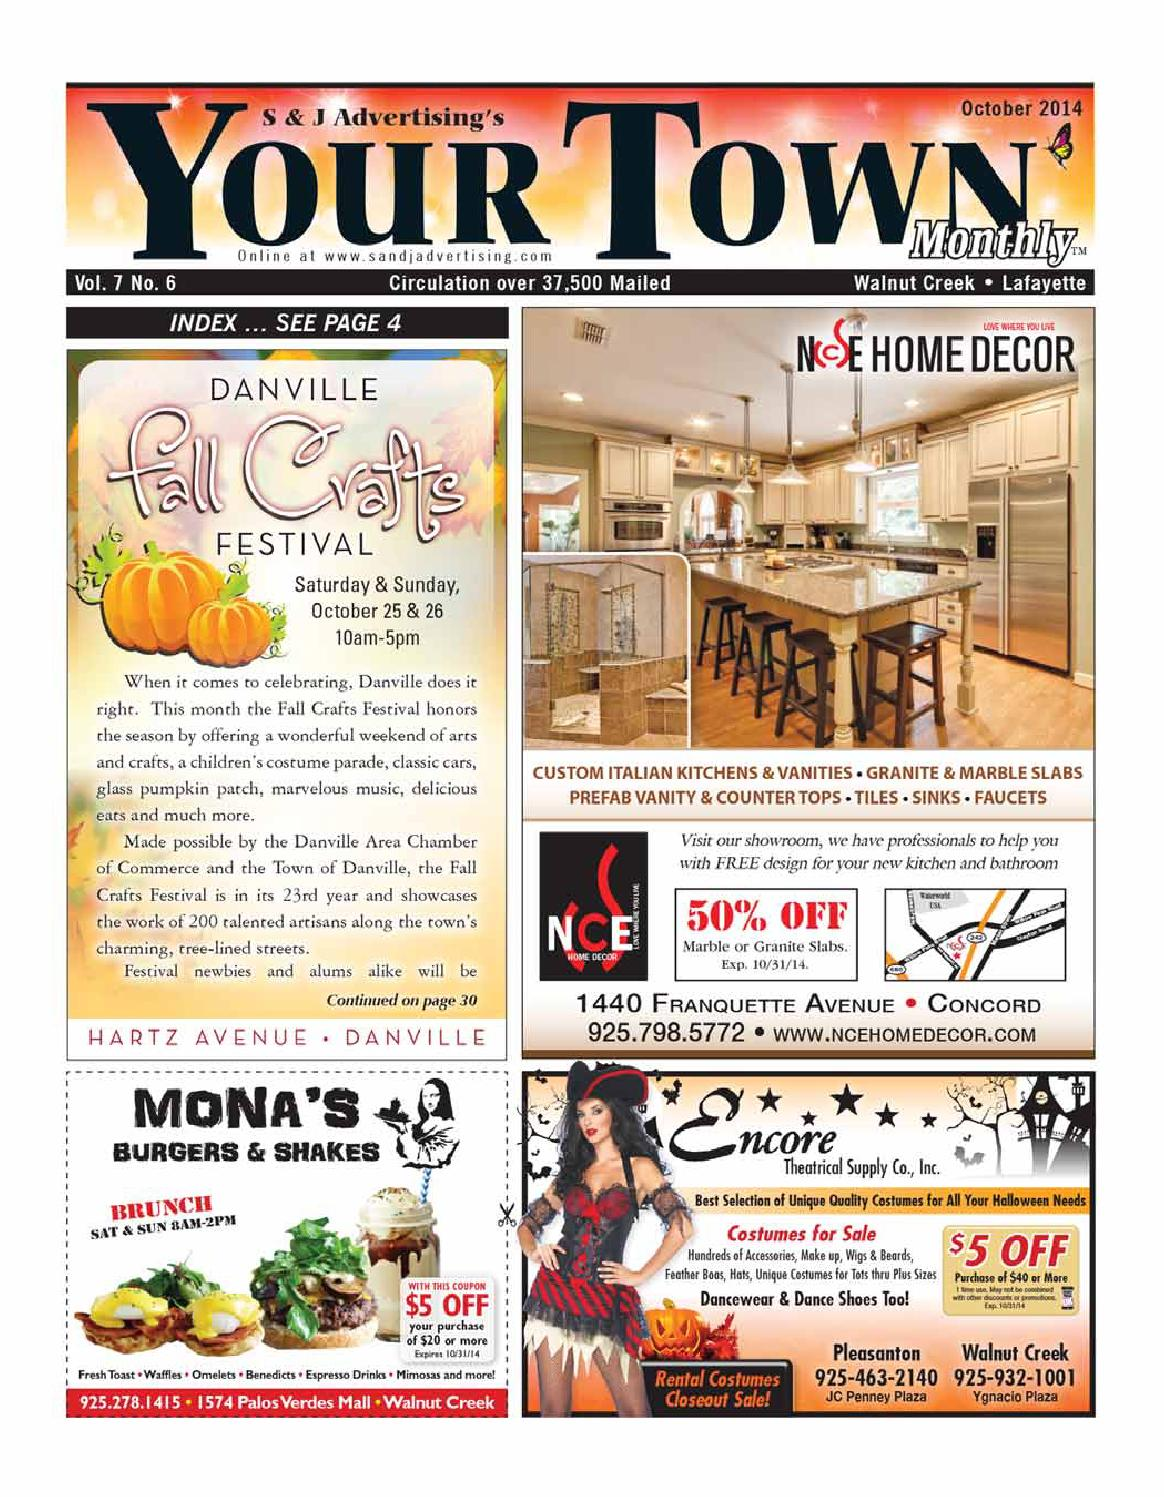 walnut creek/lafayette october 2014your town monthly - issuu